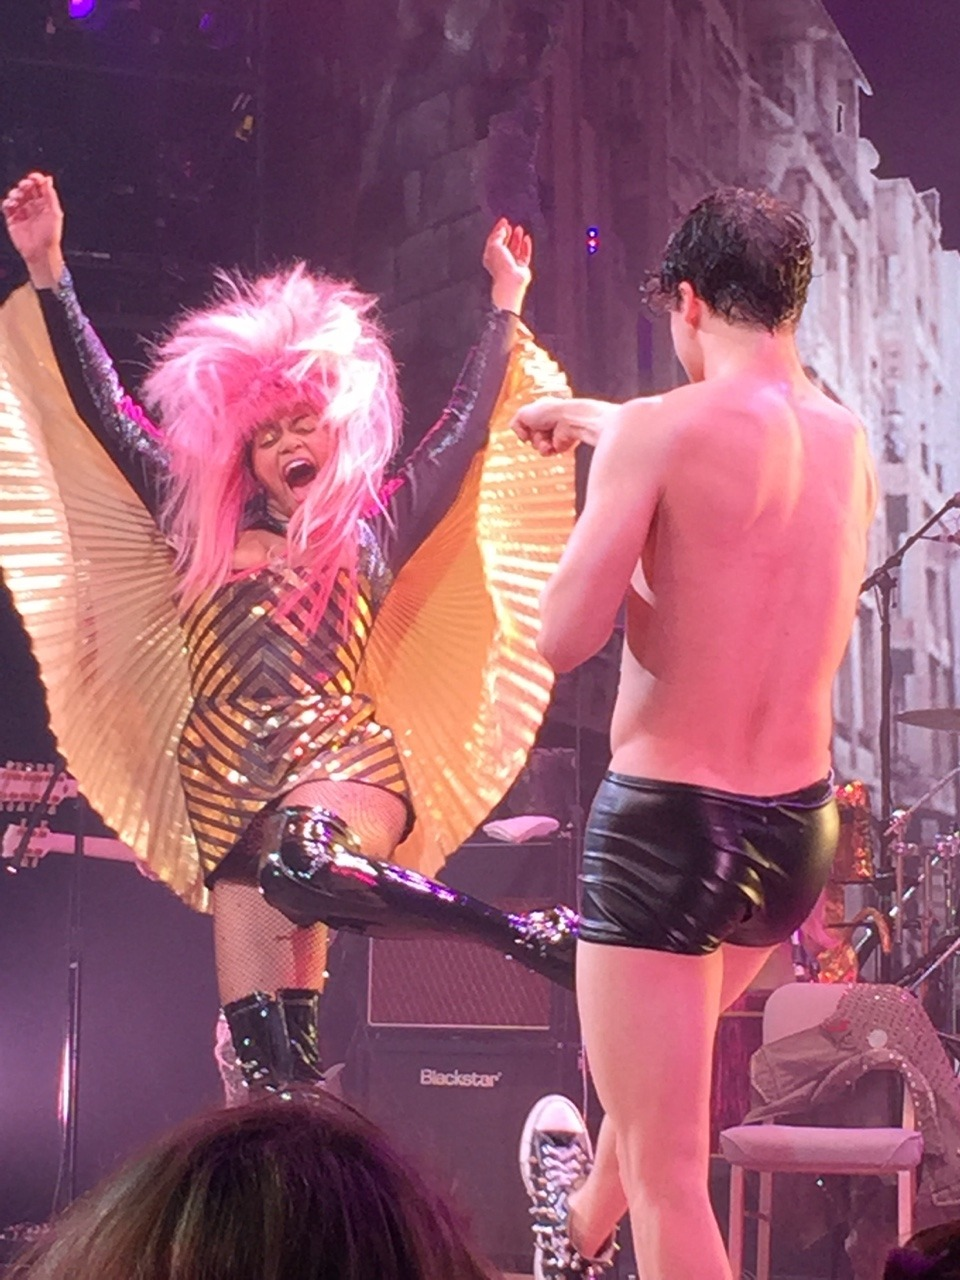 darrenishedwig - Pics and gifs of Darren in Hedwig and the Angry Inch on Broadway. Tumblr_nq6b14Y2Qk1qdtnwjo5_1280